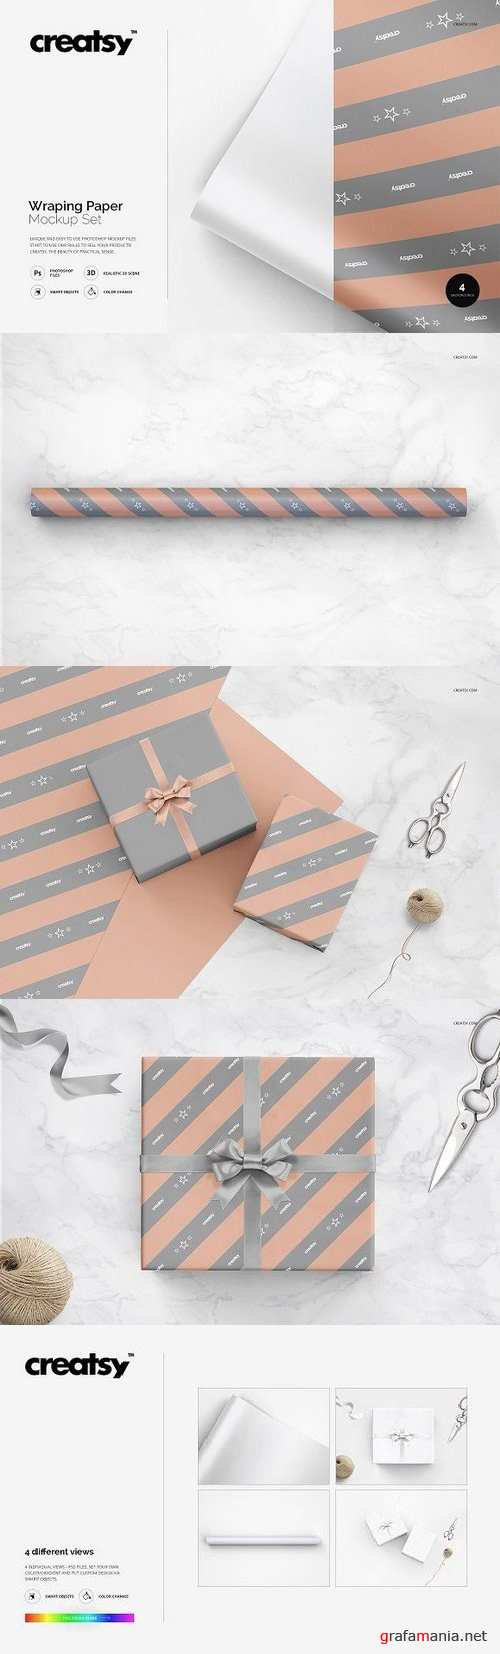 Wrapping Paper Mockup Set 1254428